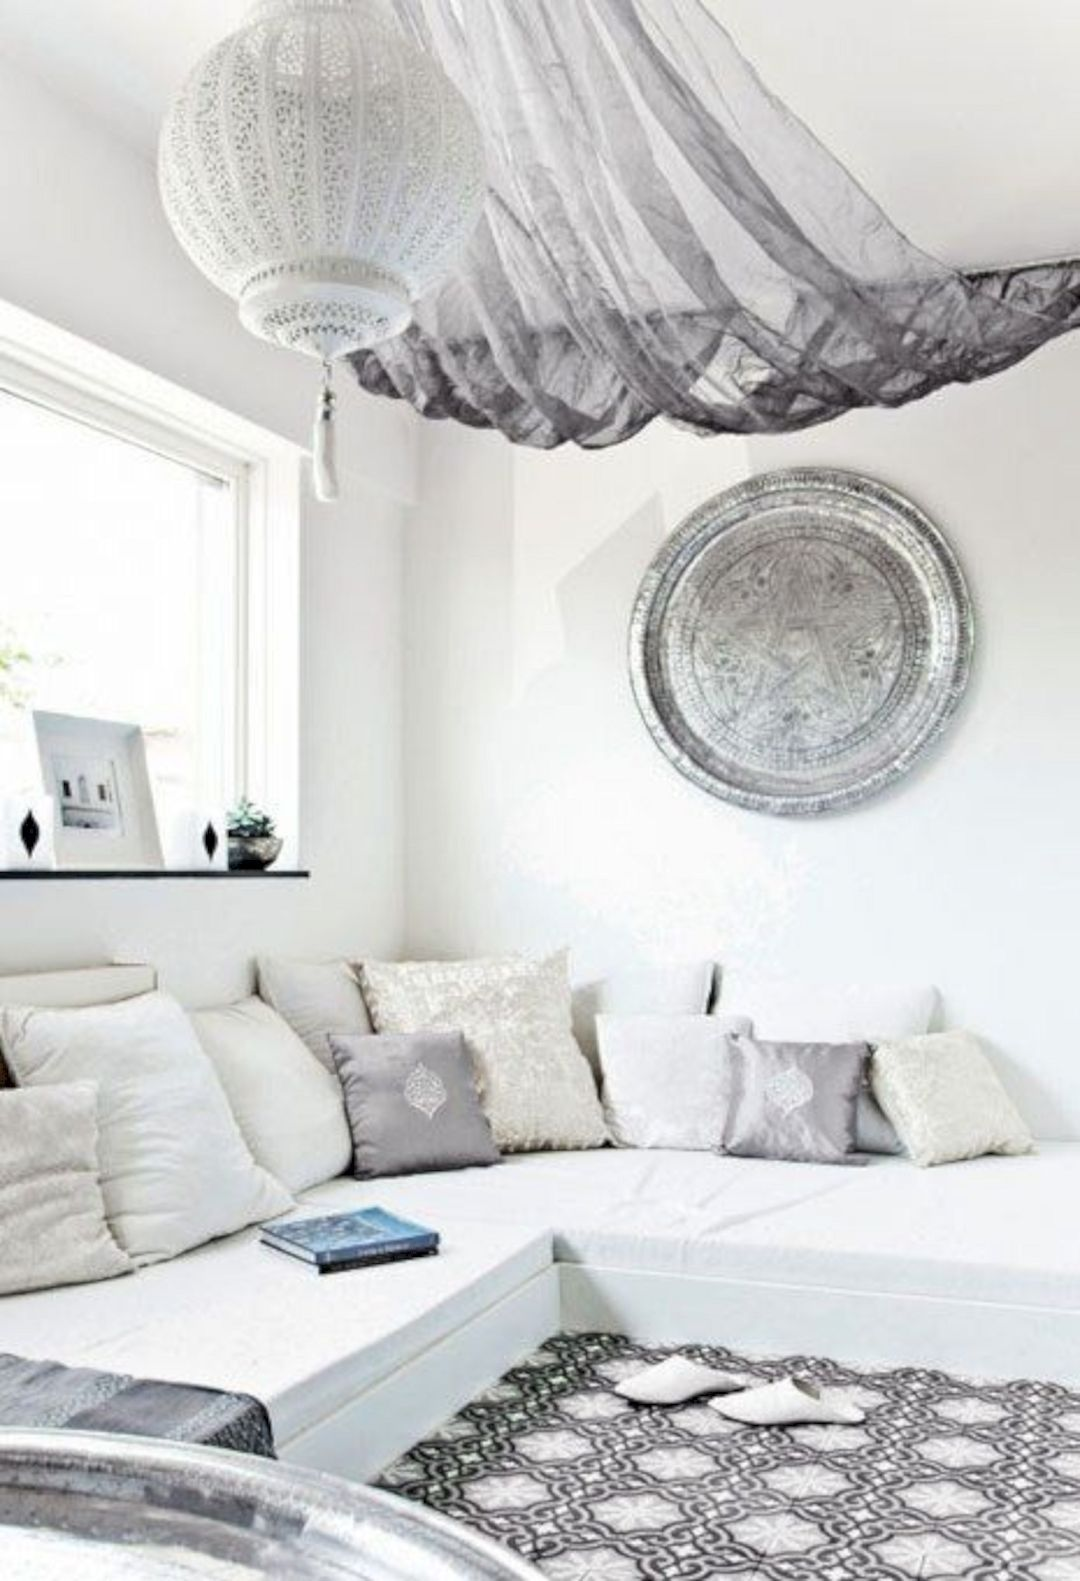 16 Moroccan Home Decoration Ideas | Moroccan room, Moroccan and ...